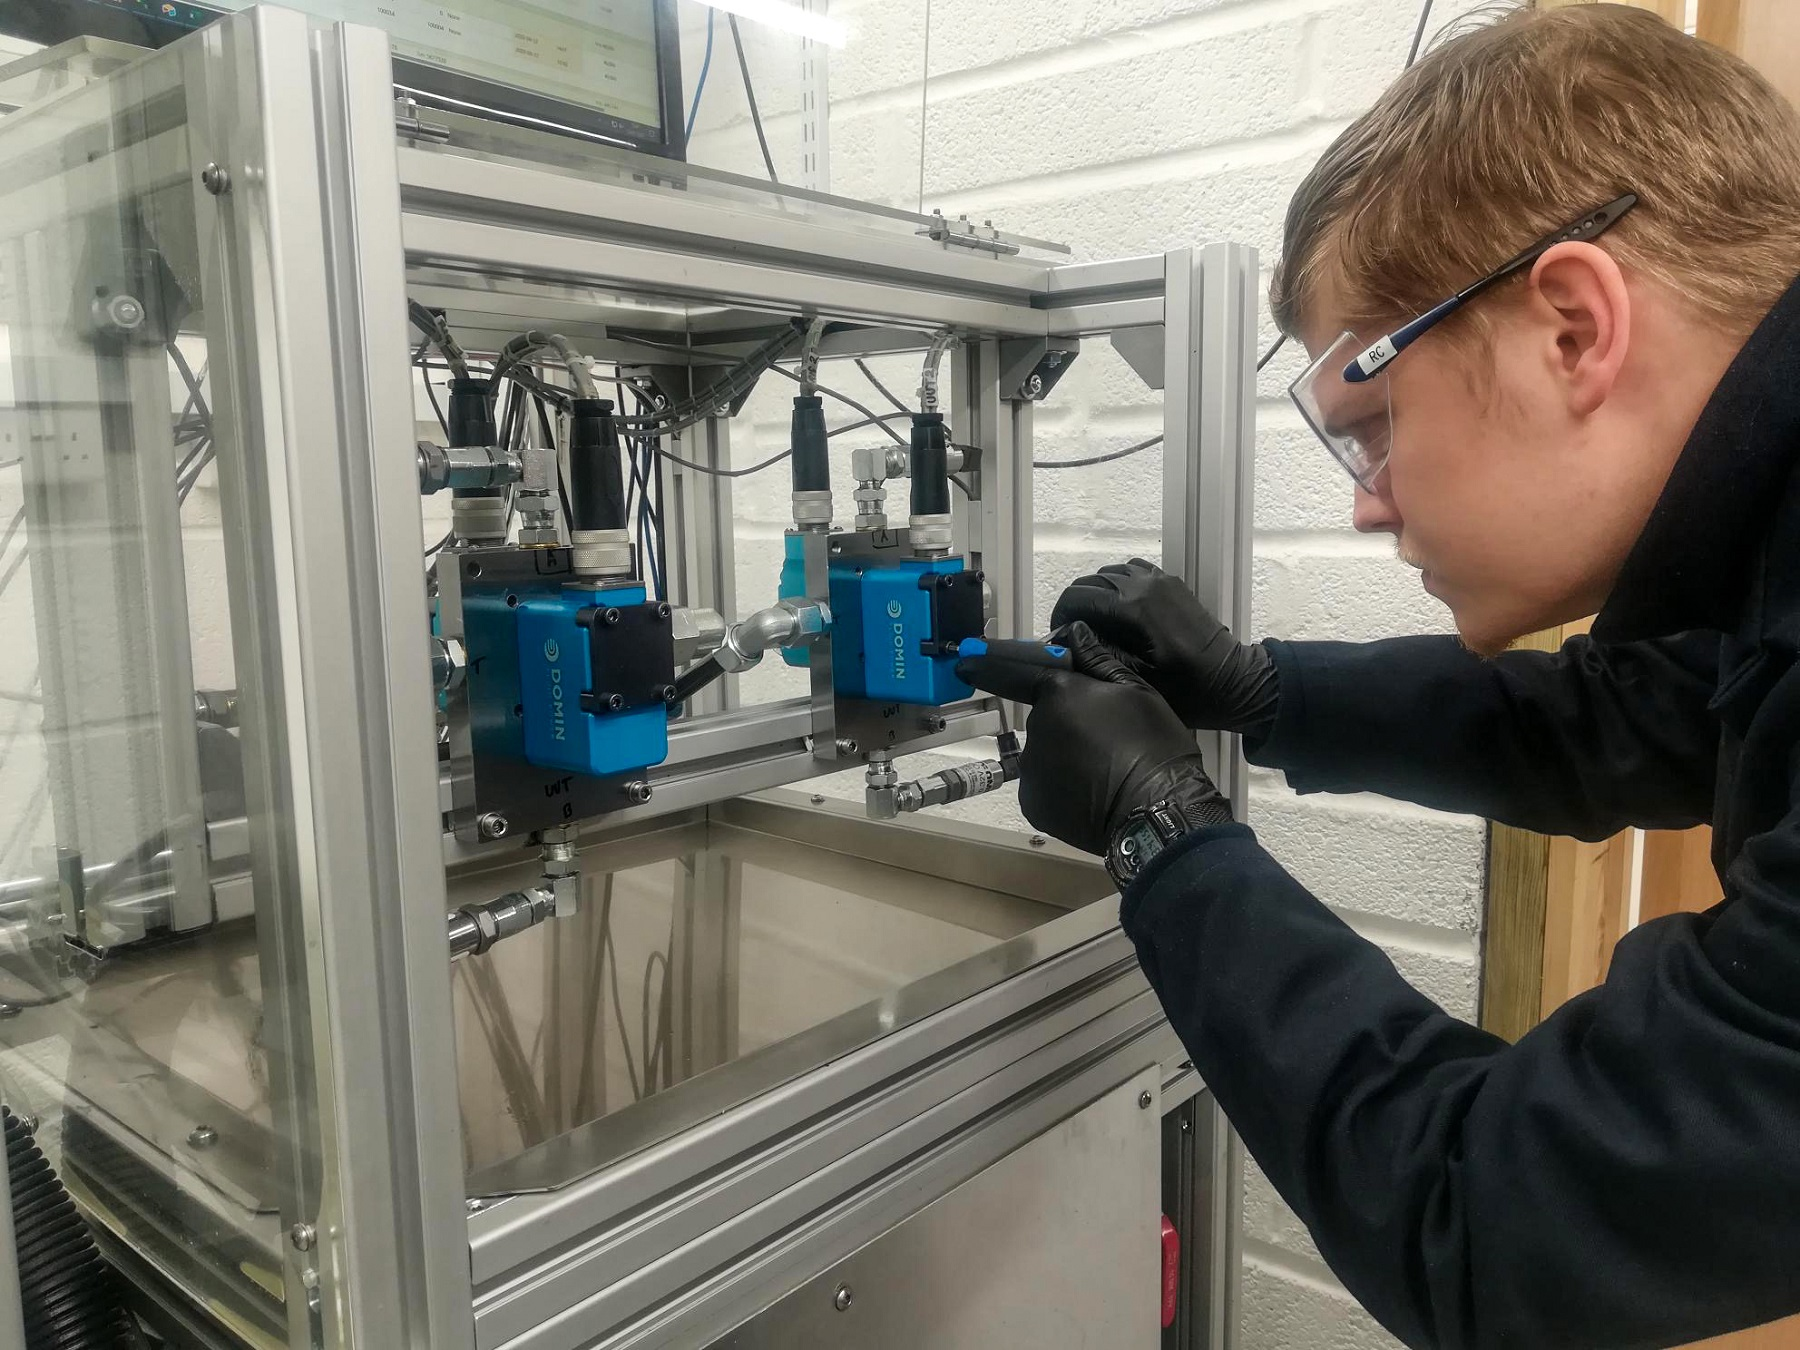 Renishaw's AM technology has enabled Domin to redesign and improve its servo valves. Photo via Renishaw.